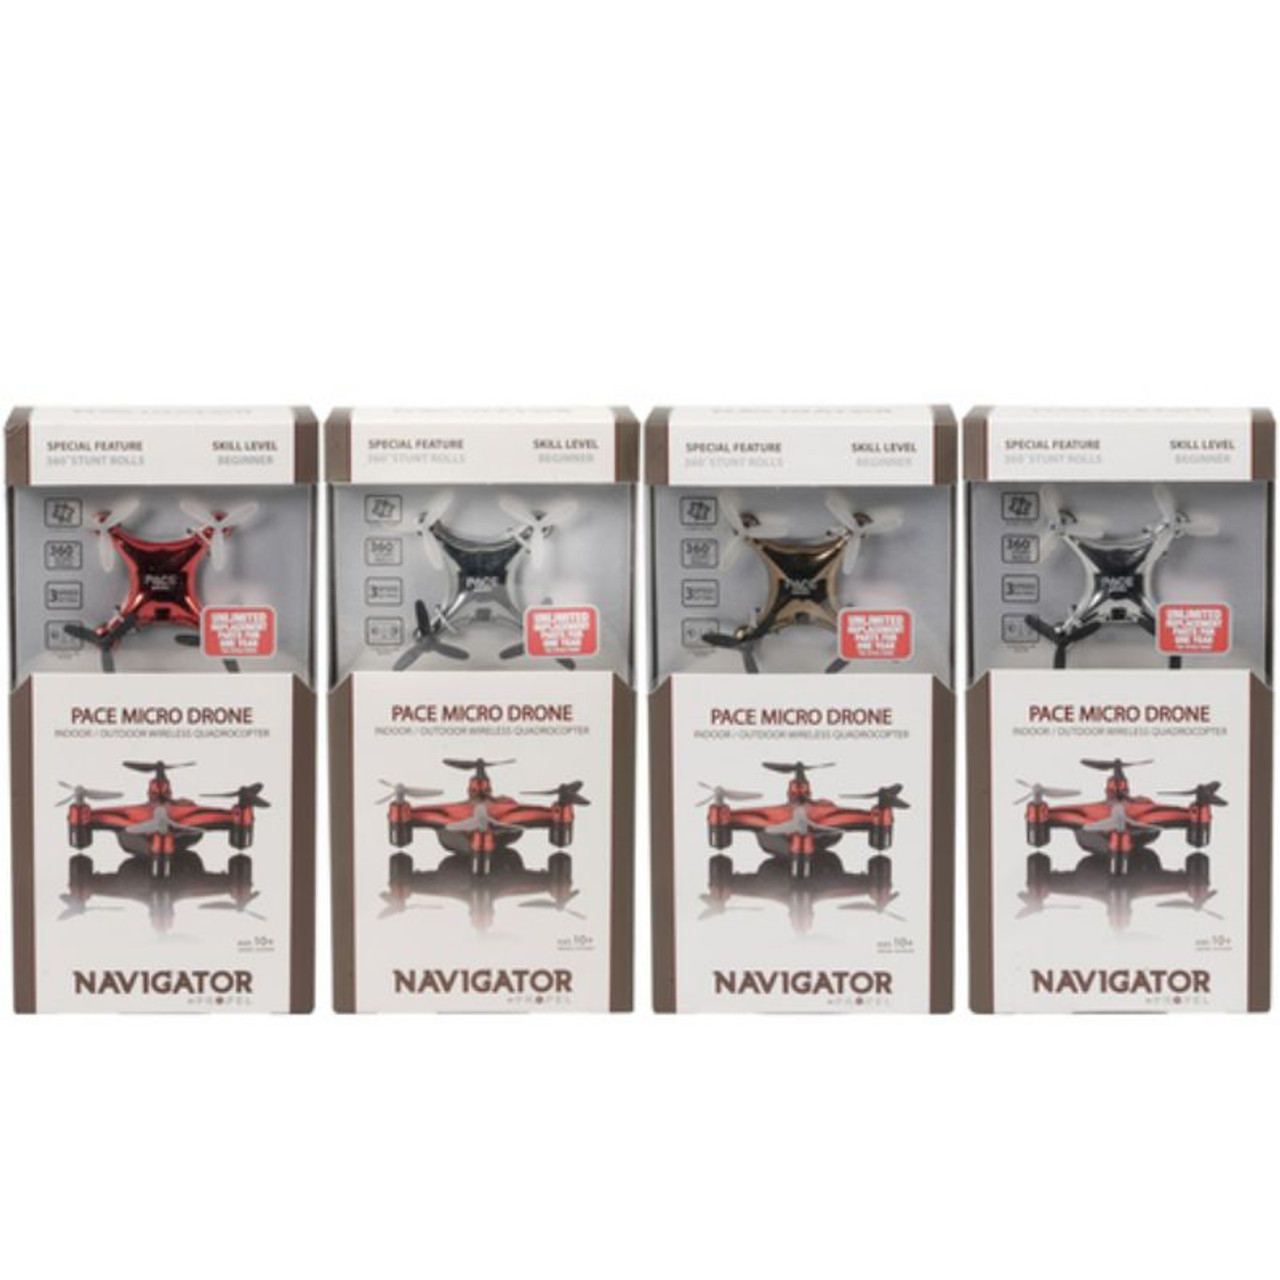 Propel Navigator Pace Micro Drone Wireless Quadcopter, Assorted Colors - NETIPMD